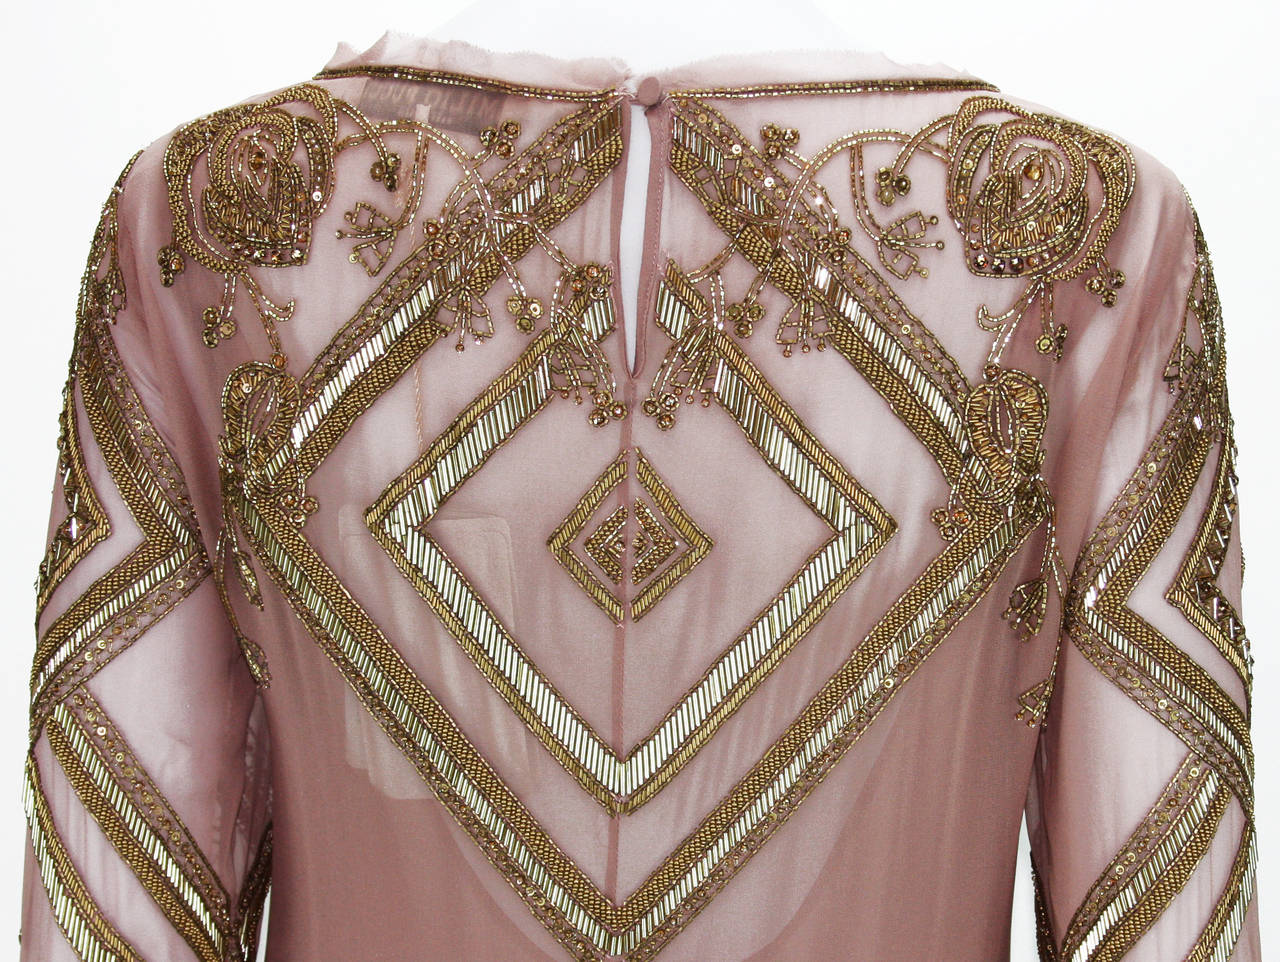 New EMILIO PUCCI Embellished Silk Dress 7